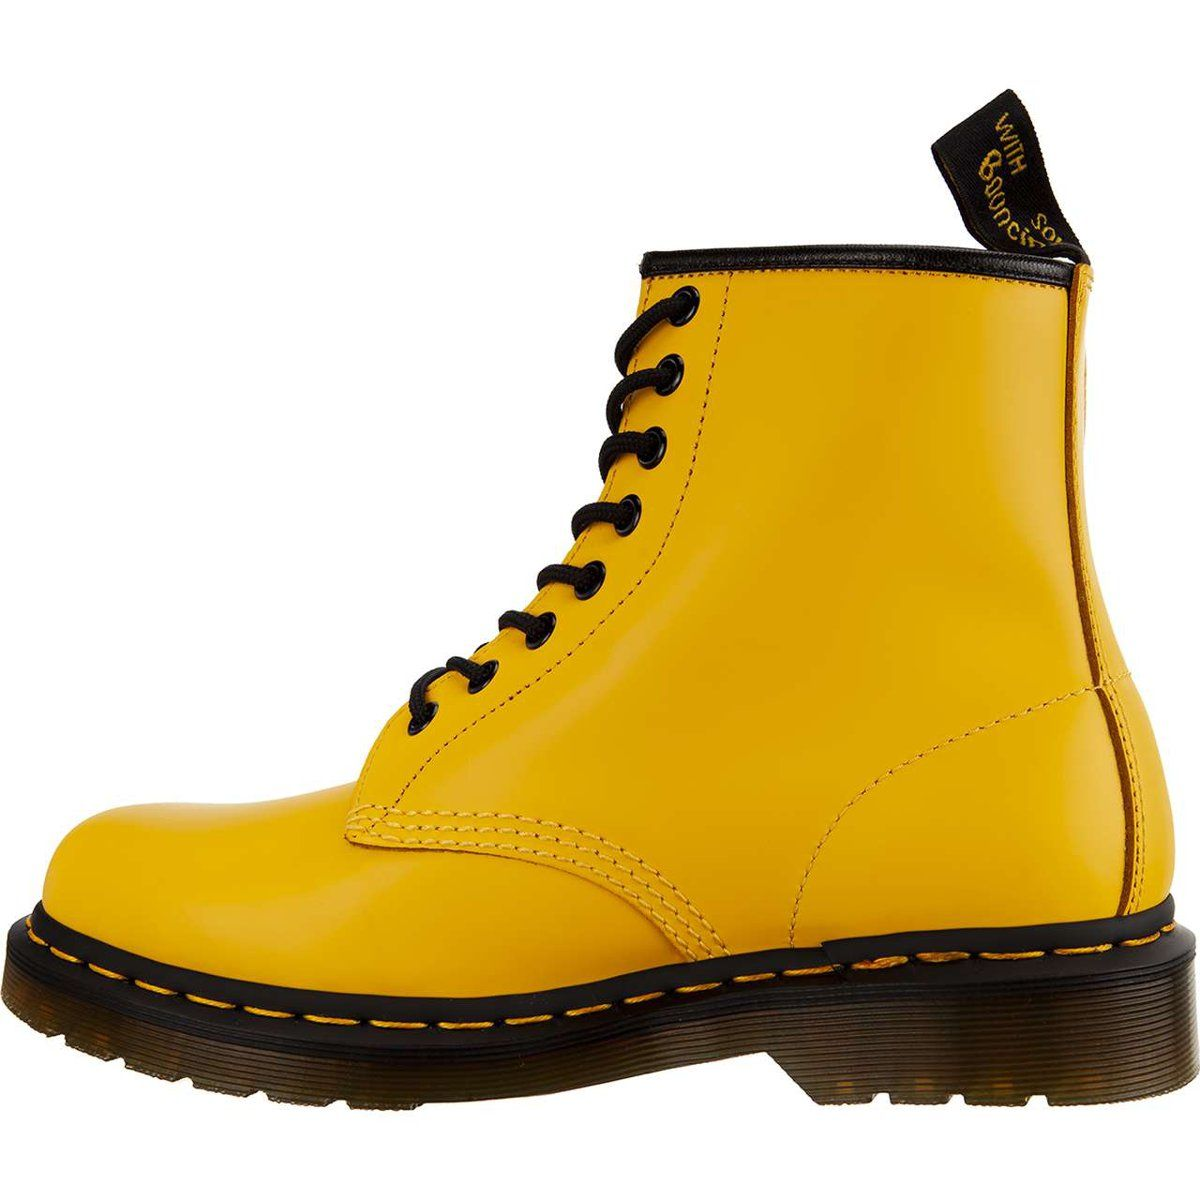 Glany Damskie Drmartens Dr Martens 1460 Smooth Summer Icons Yellow Dr Martens Yellow Dr Martens Combat Boots